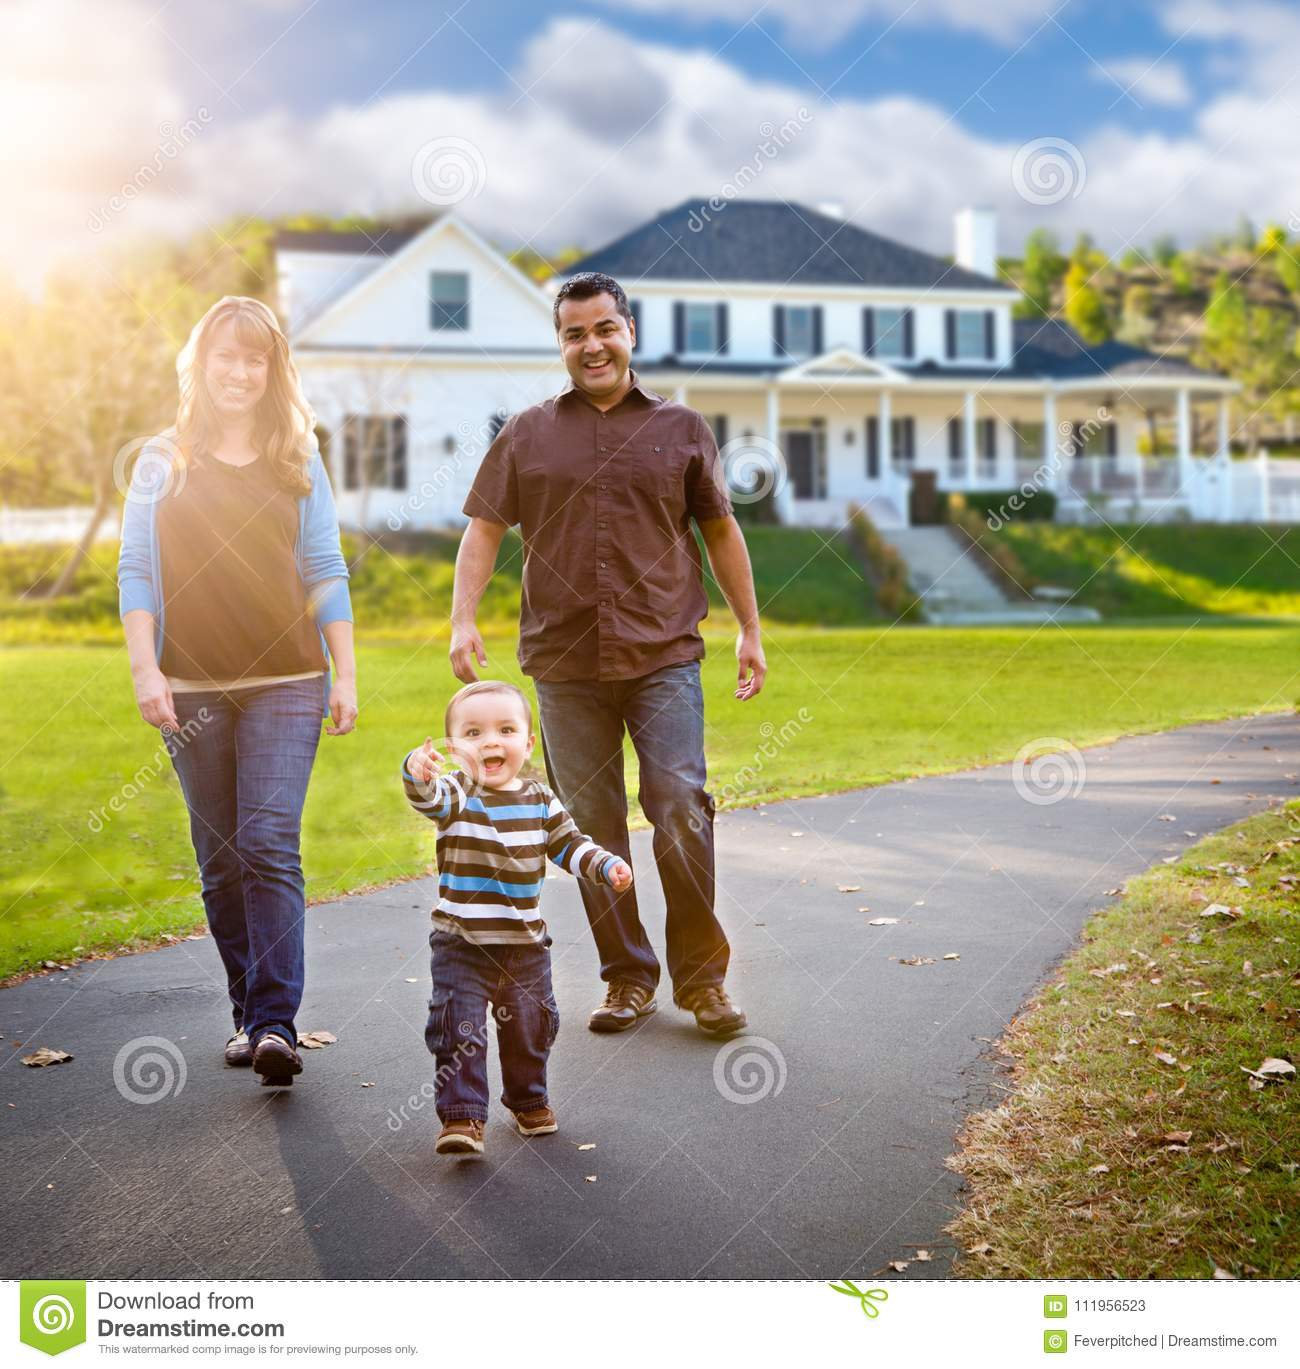 Happy Mixed Race Family Walking in Front of Beautiful Custom Home